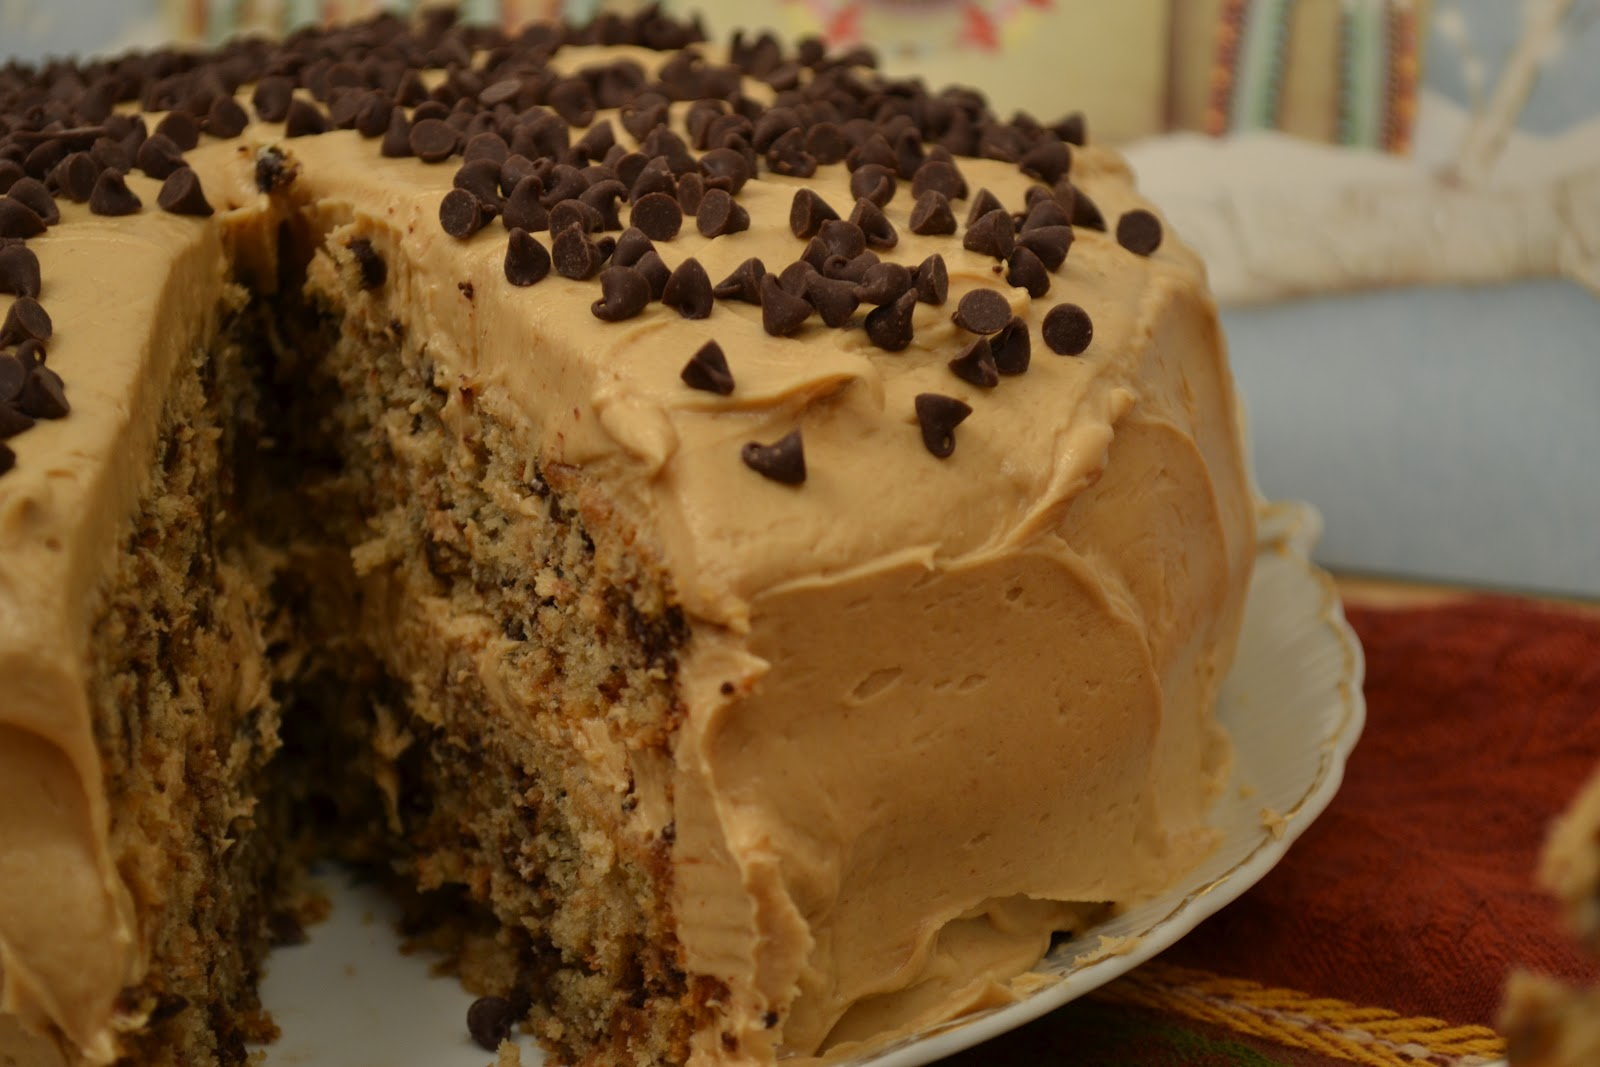 ... of Alaska: Chocolate Chip Banana Cake with Peanut Butter Frosting